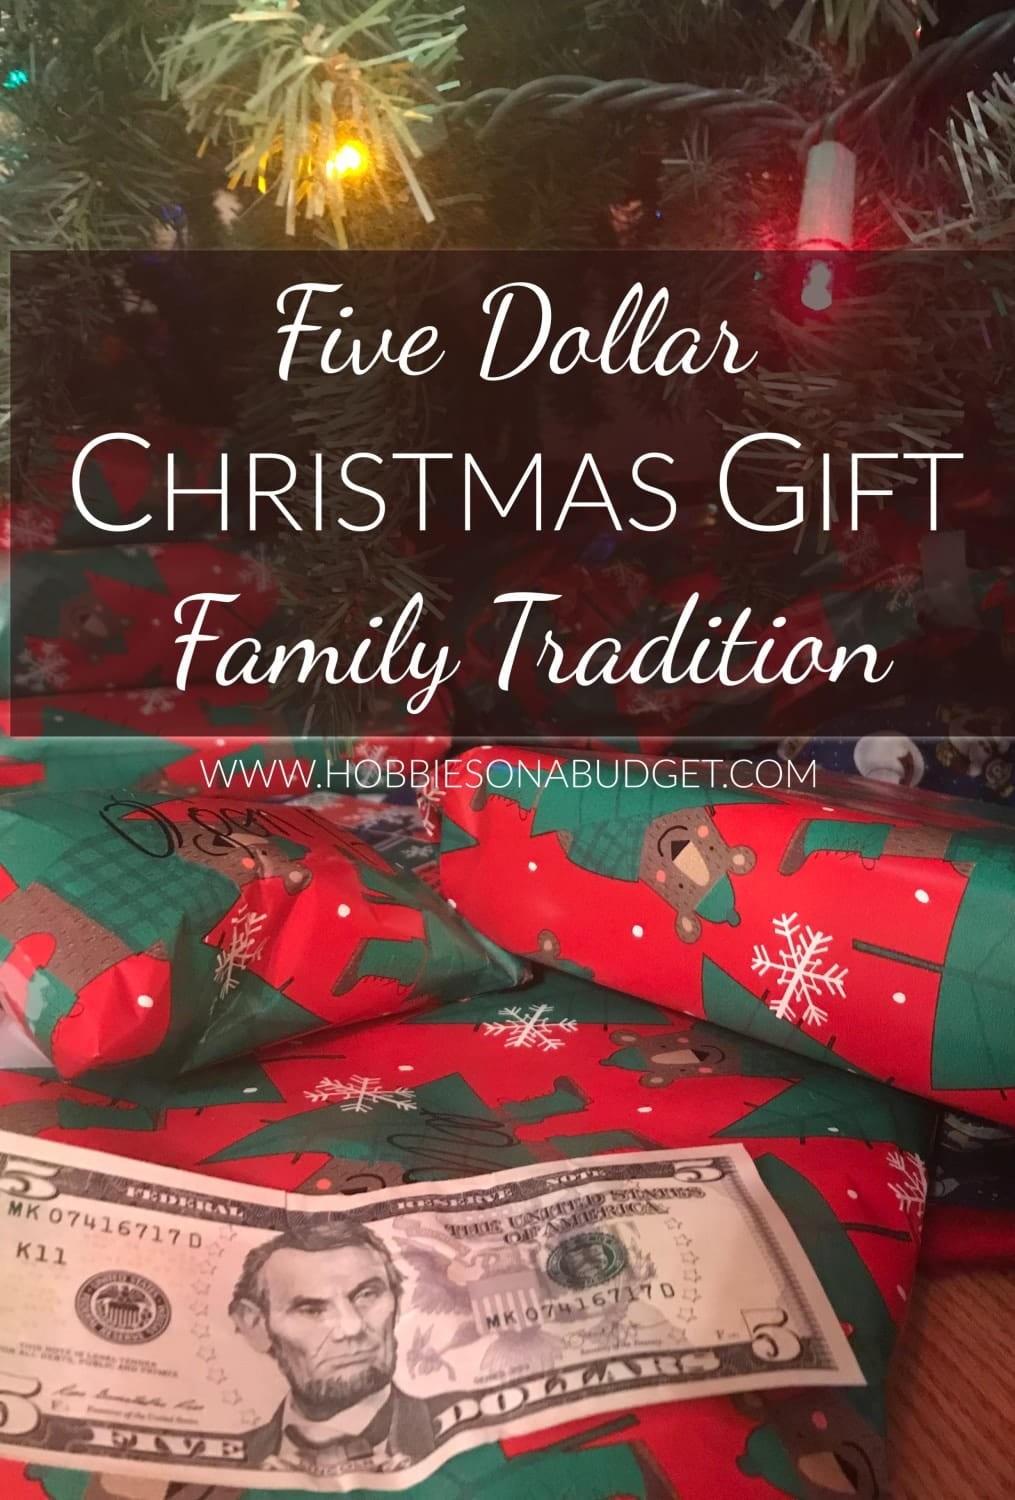 Five Dollar Christmas Gift Tradition